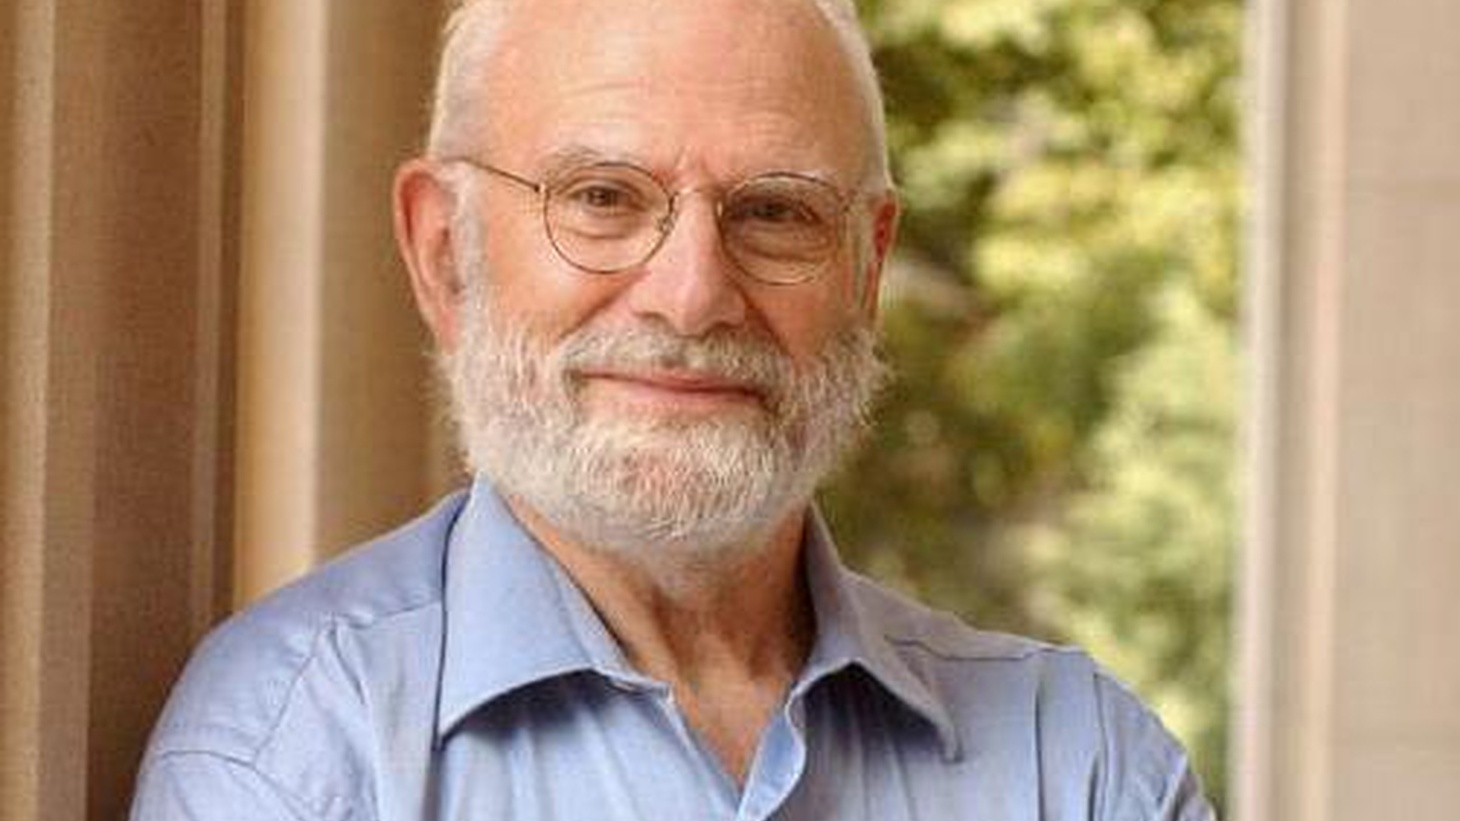 Oliver Sacks on the neuropsychology and literature of hallucination, and what this disorienting medical condition reveals about the nature of the mind and human condition.